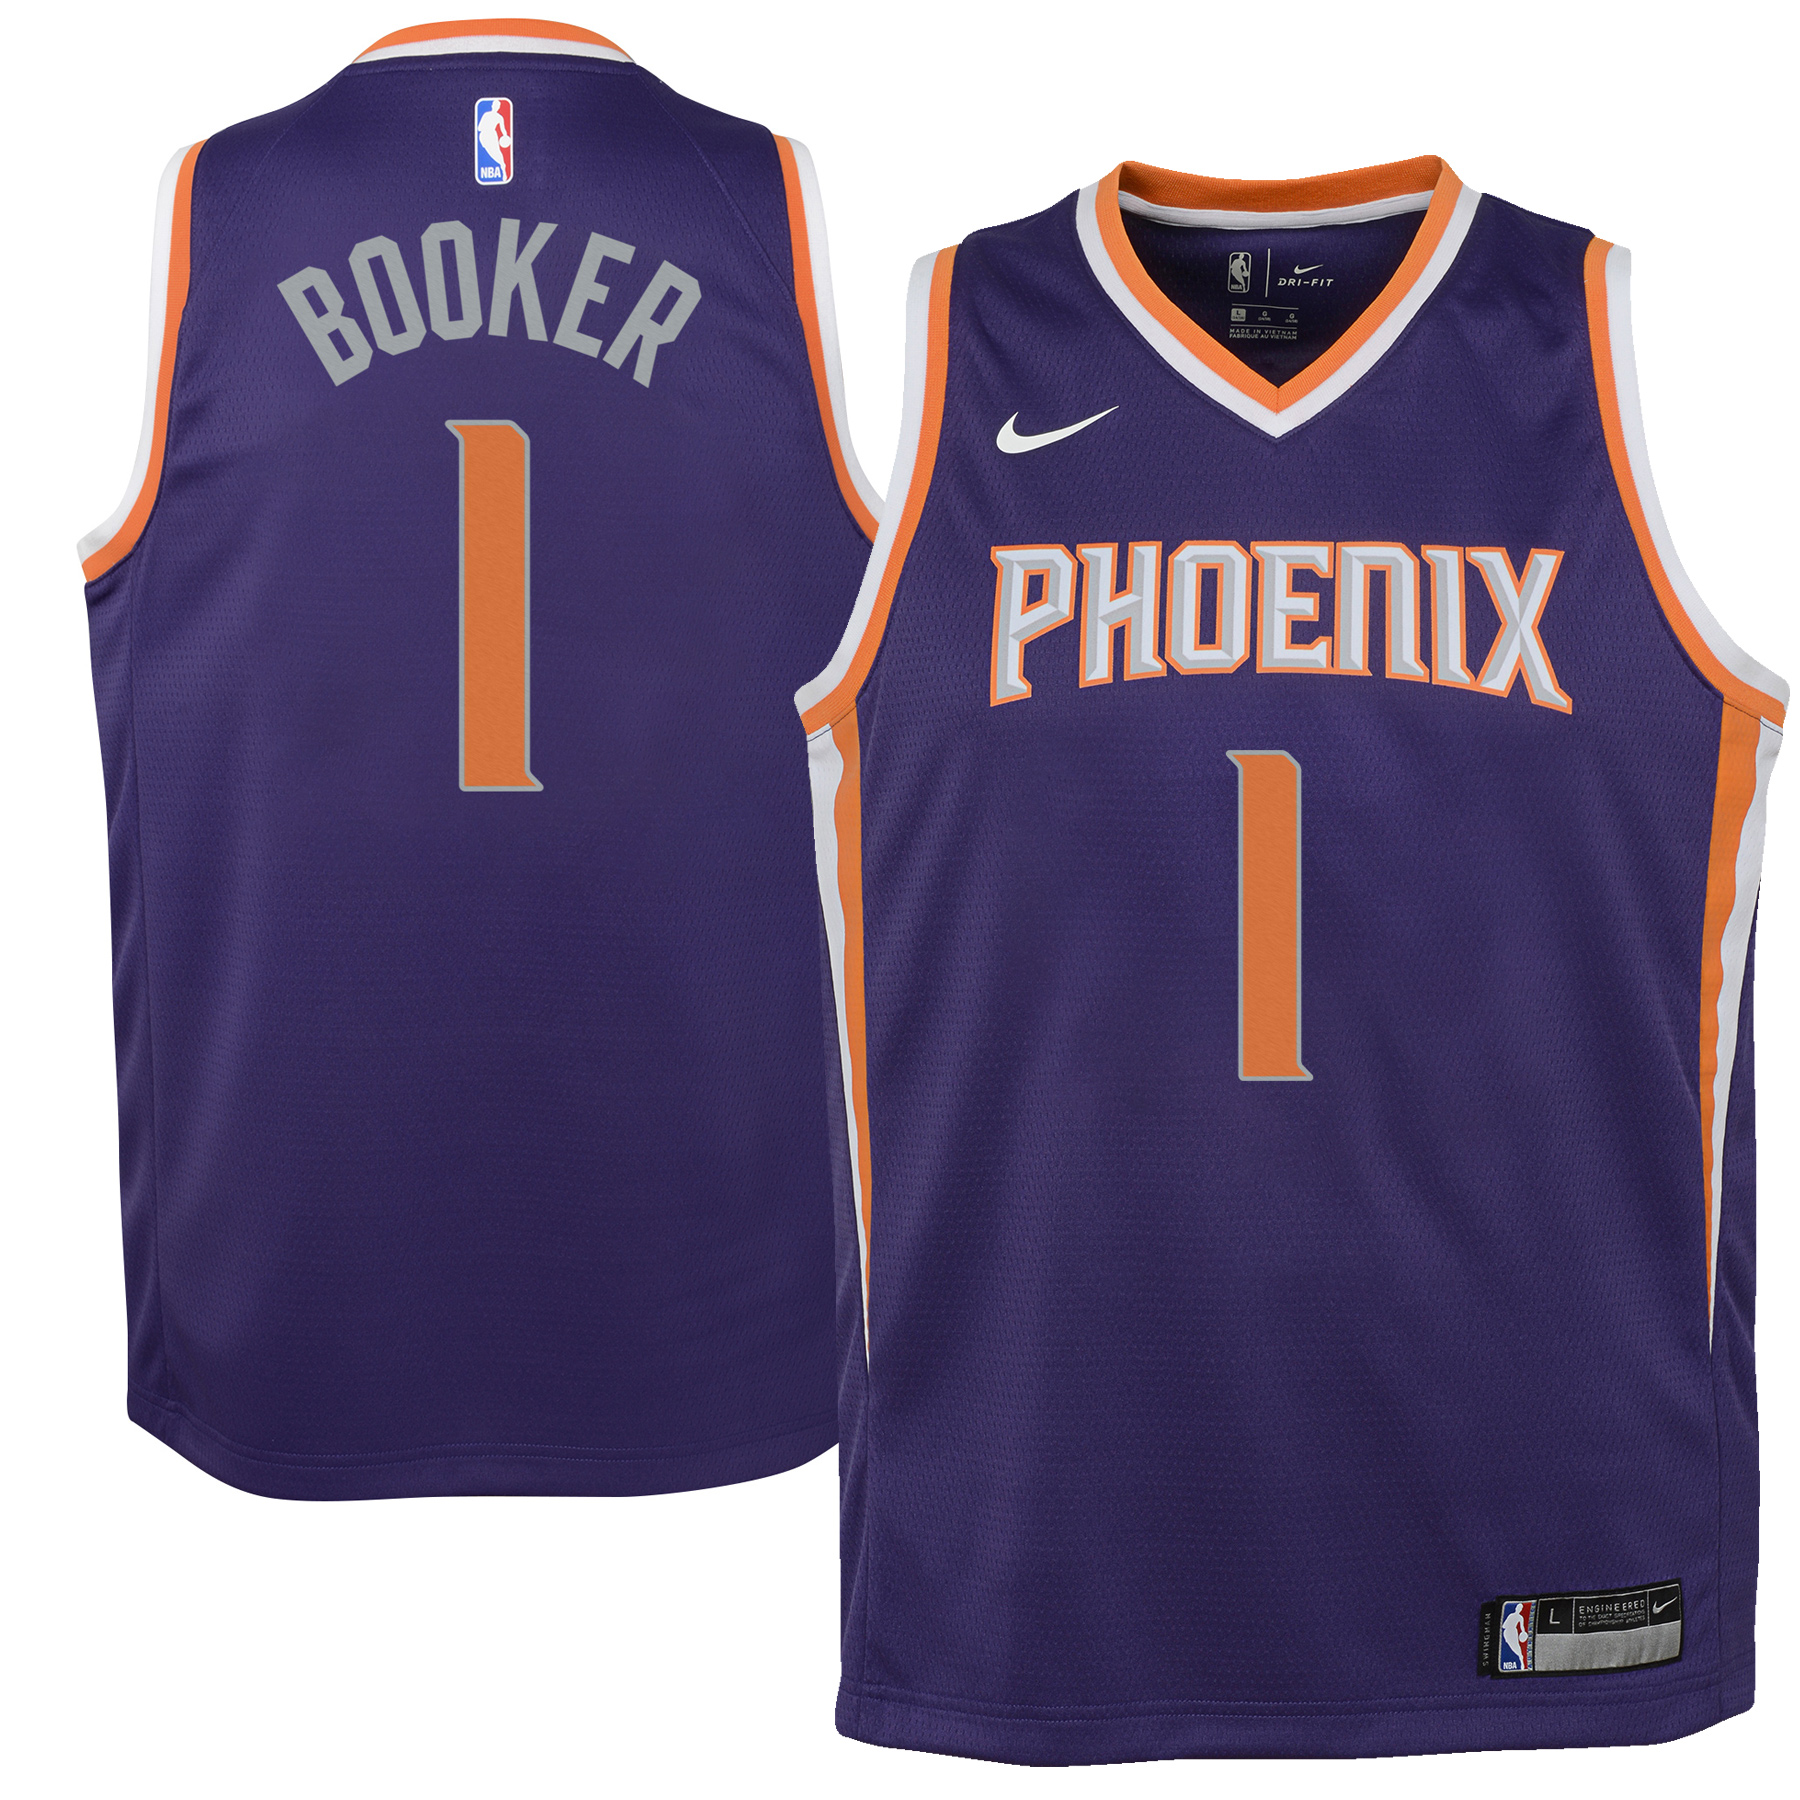 Devin Booker Phoenix Suns Nike Youth Swingman Jersey Purple - Icon Edition